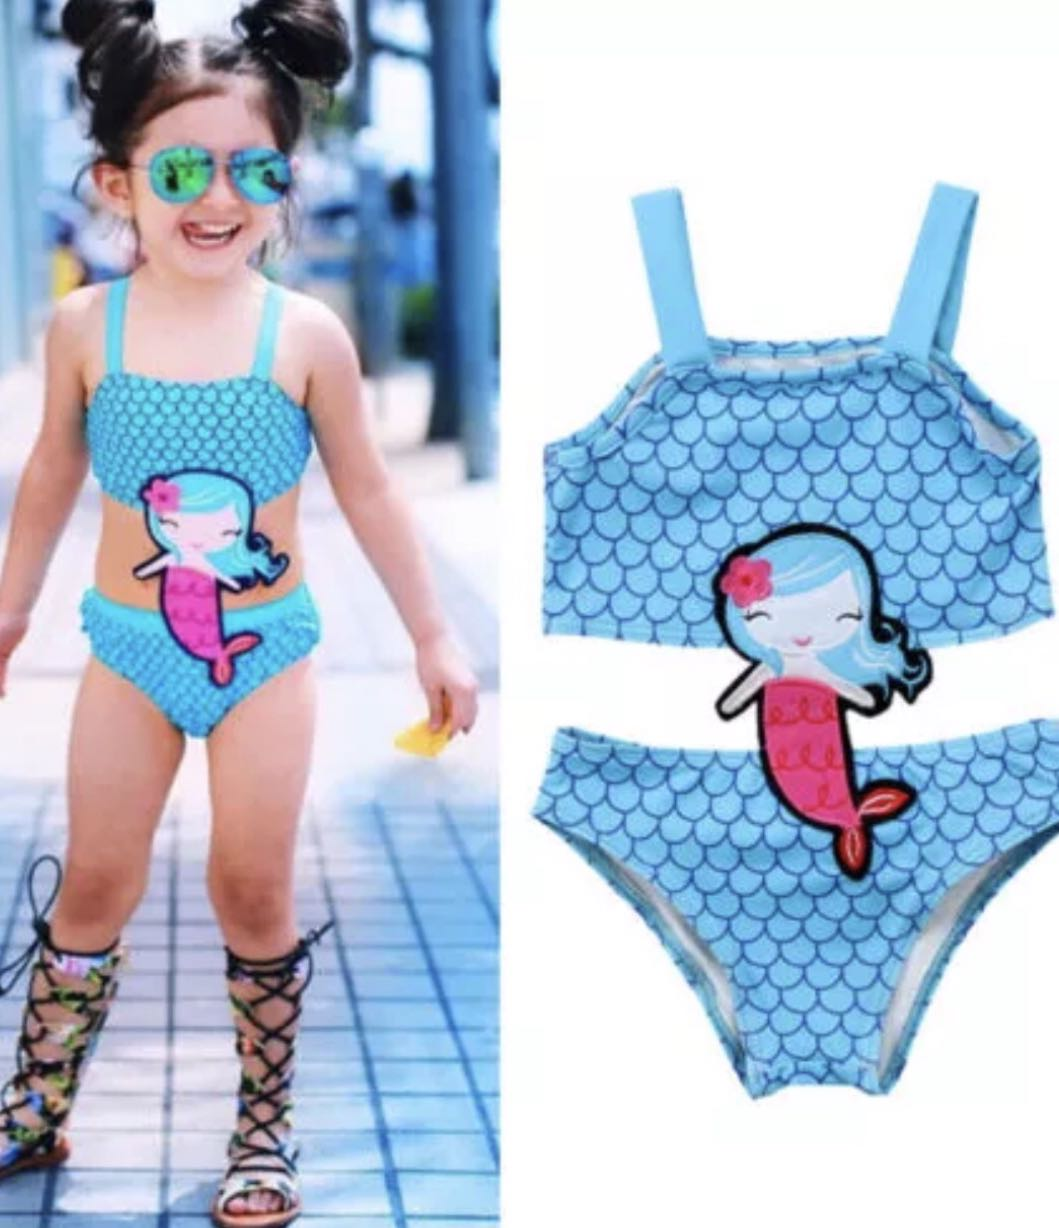 d2359c8b164c New design - Little Mermaid Blue Fish Scales Swimming Costume ...